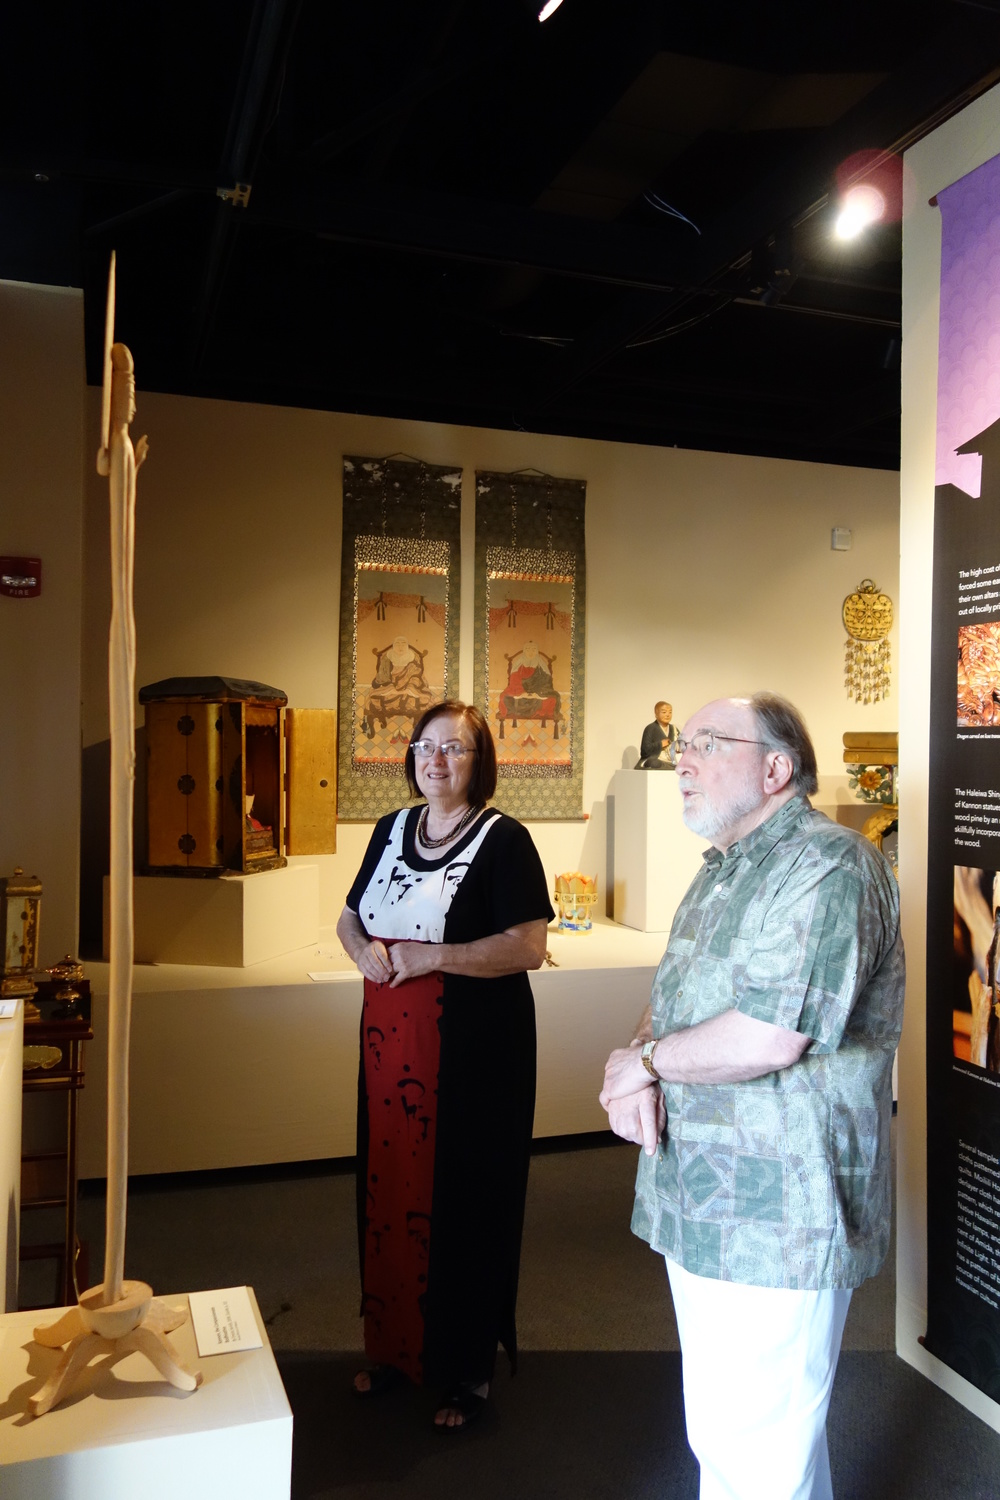 Willa Tanabe and Gov. Abercrombie admiring a modern rendition of Kannon, Bodhissattva of Compassion, borrowed from the Tendai Mission of Hawaii.